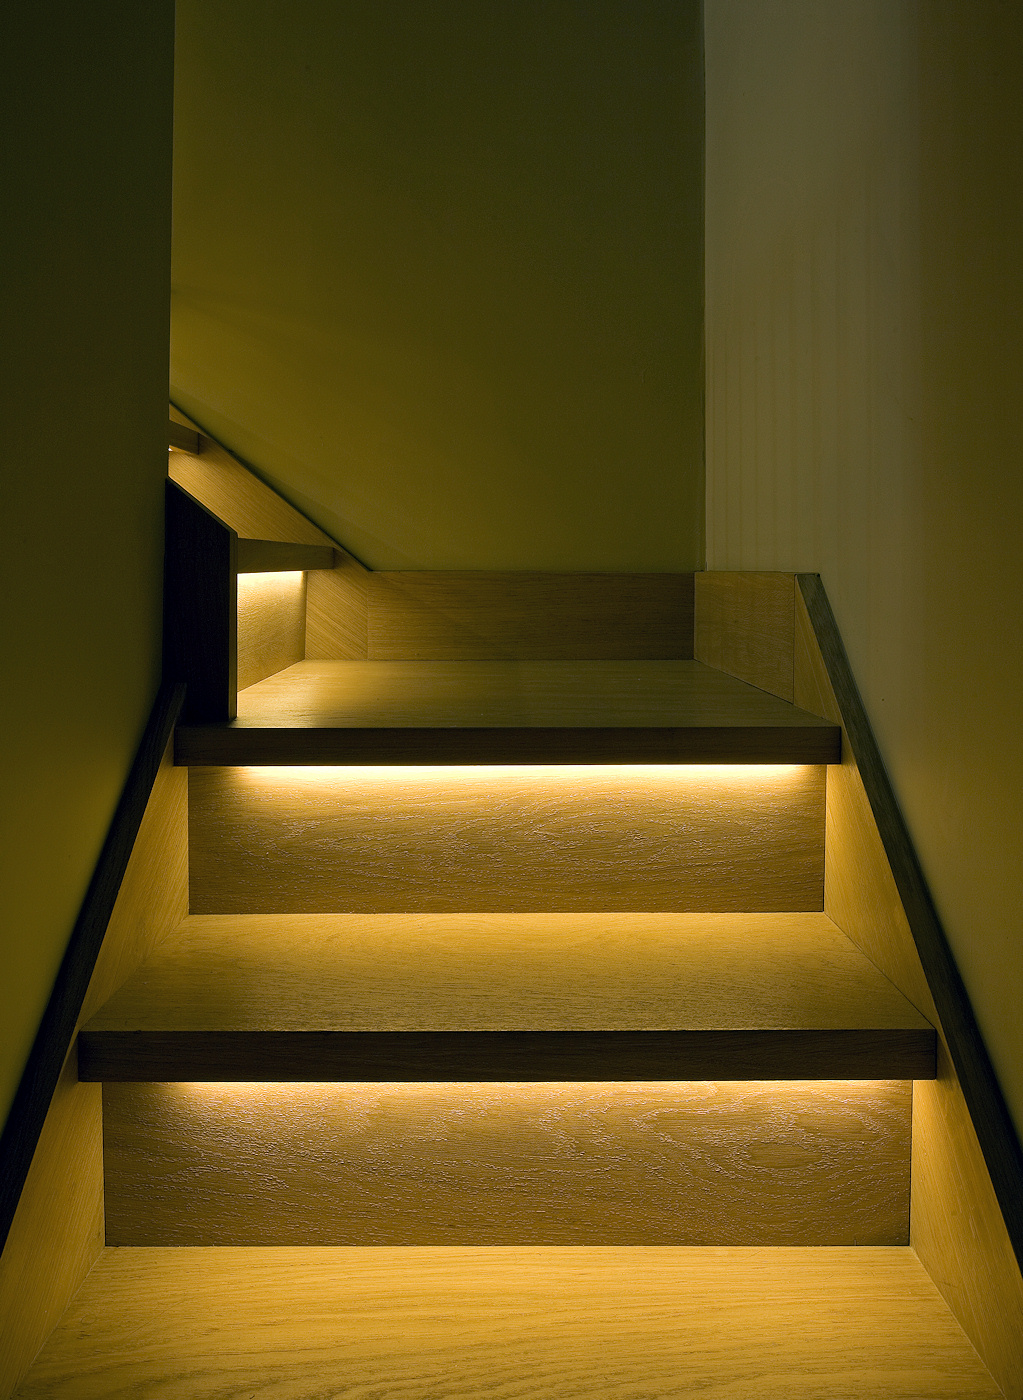 LED lighting can illuminate your stairs as well as provide ambient lighting for your home.